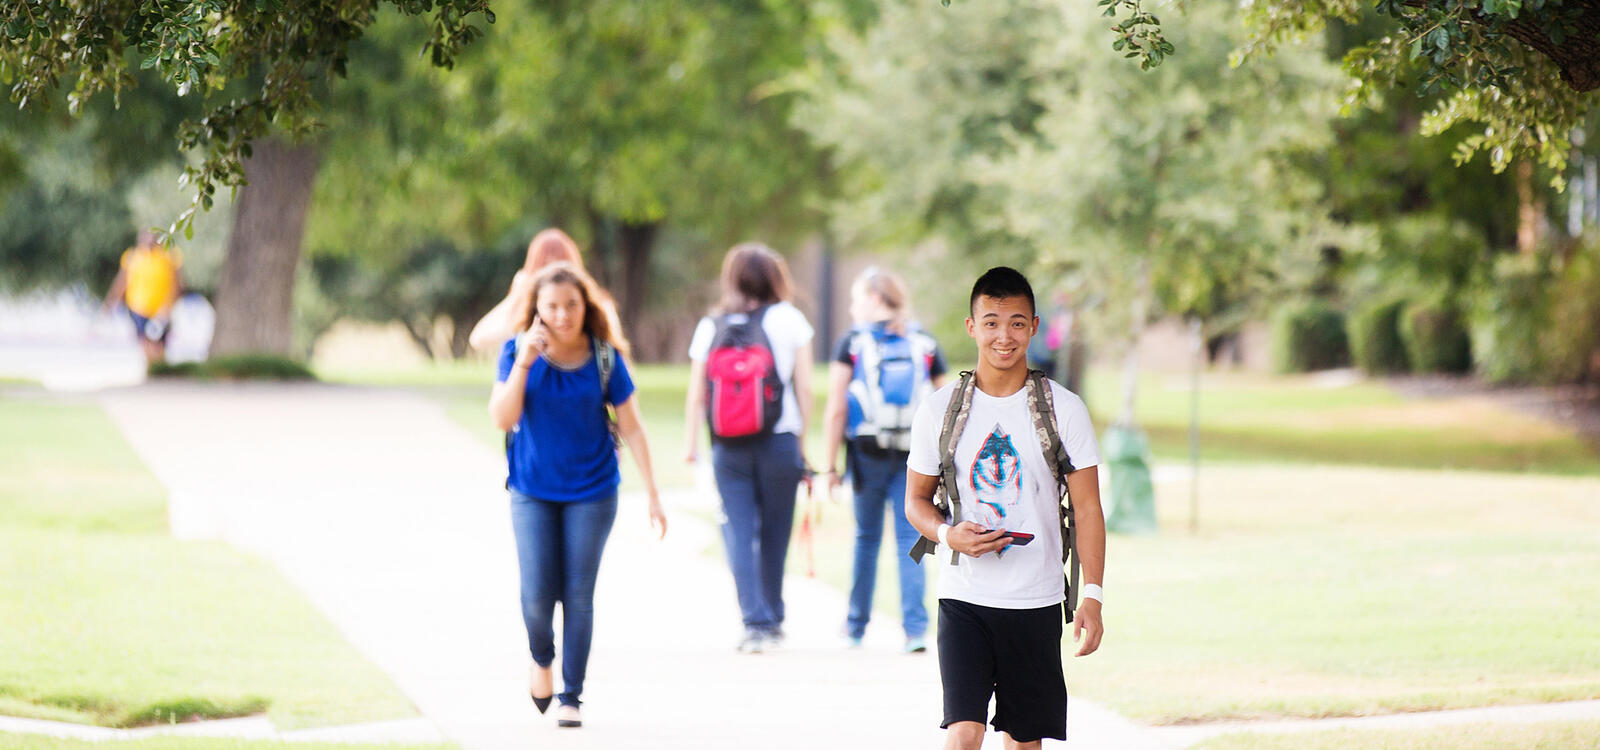 Outside on the sidewalks, students can be seen in the background walking to and from class